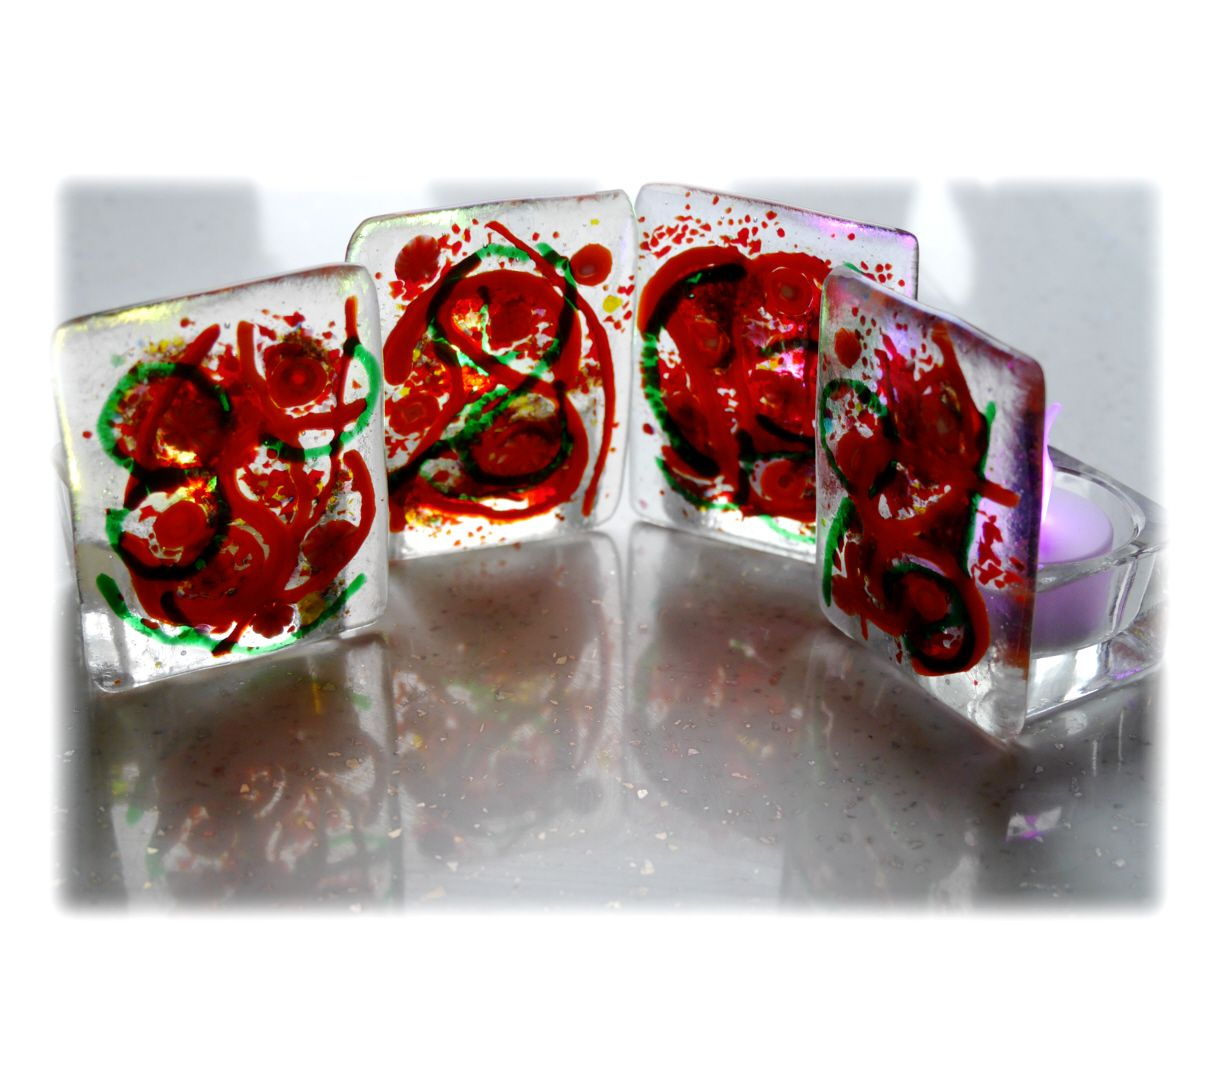 Fused Candle 8.5x6.5 001 #1811 FREE 10.00